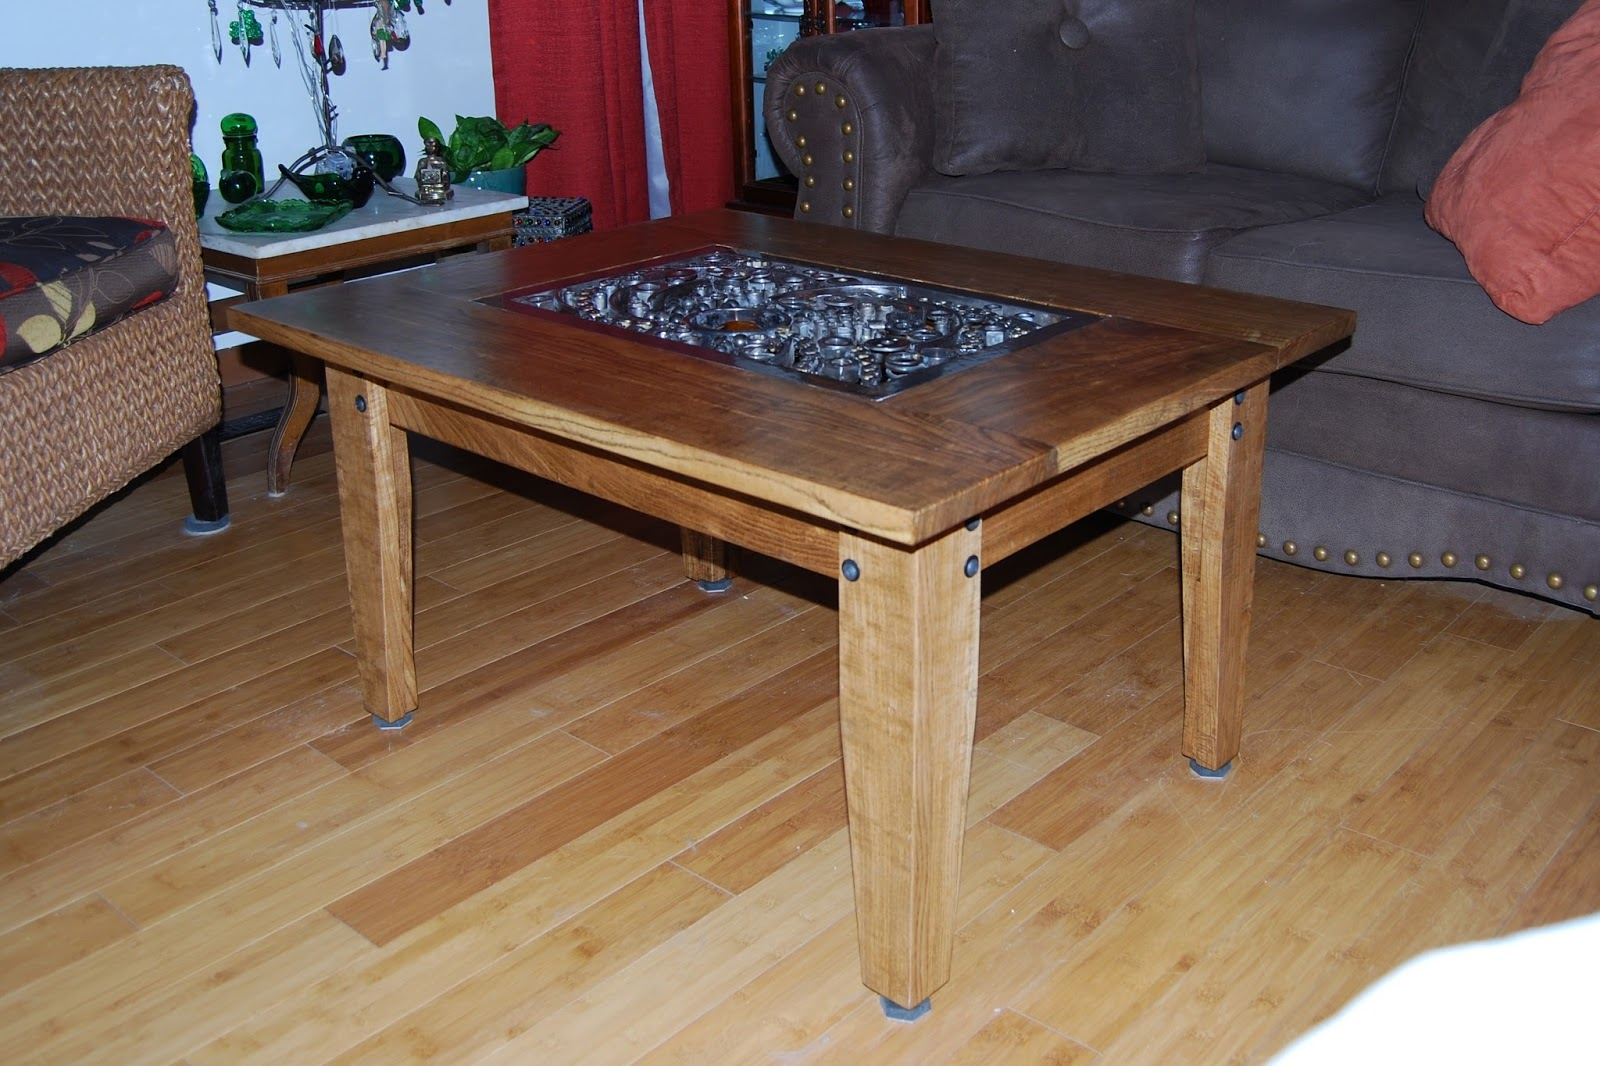 The Old Raven Workshop Welded Steel And Glass Orb Coffee Table - Welded coffee table